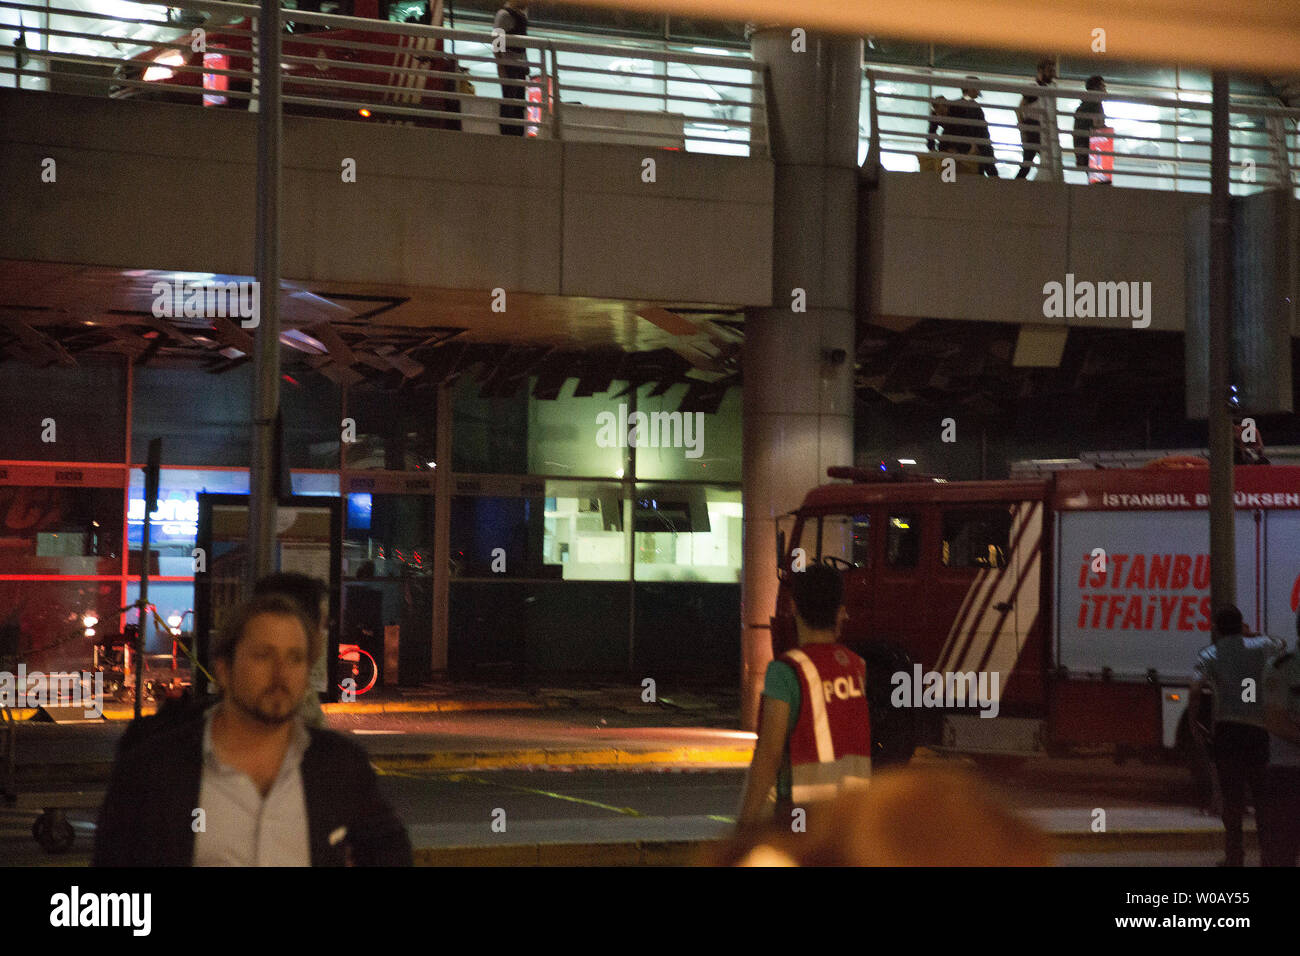 Two Explosions Photos & Two Explosions Images - Alamy